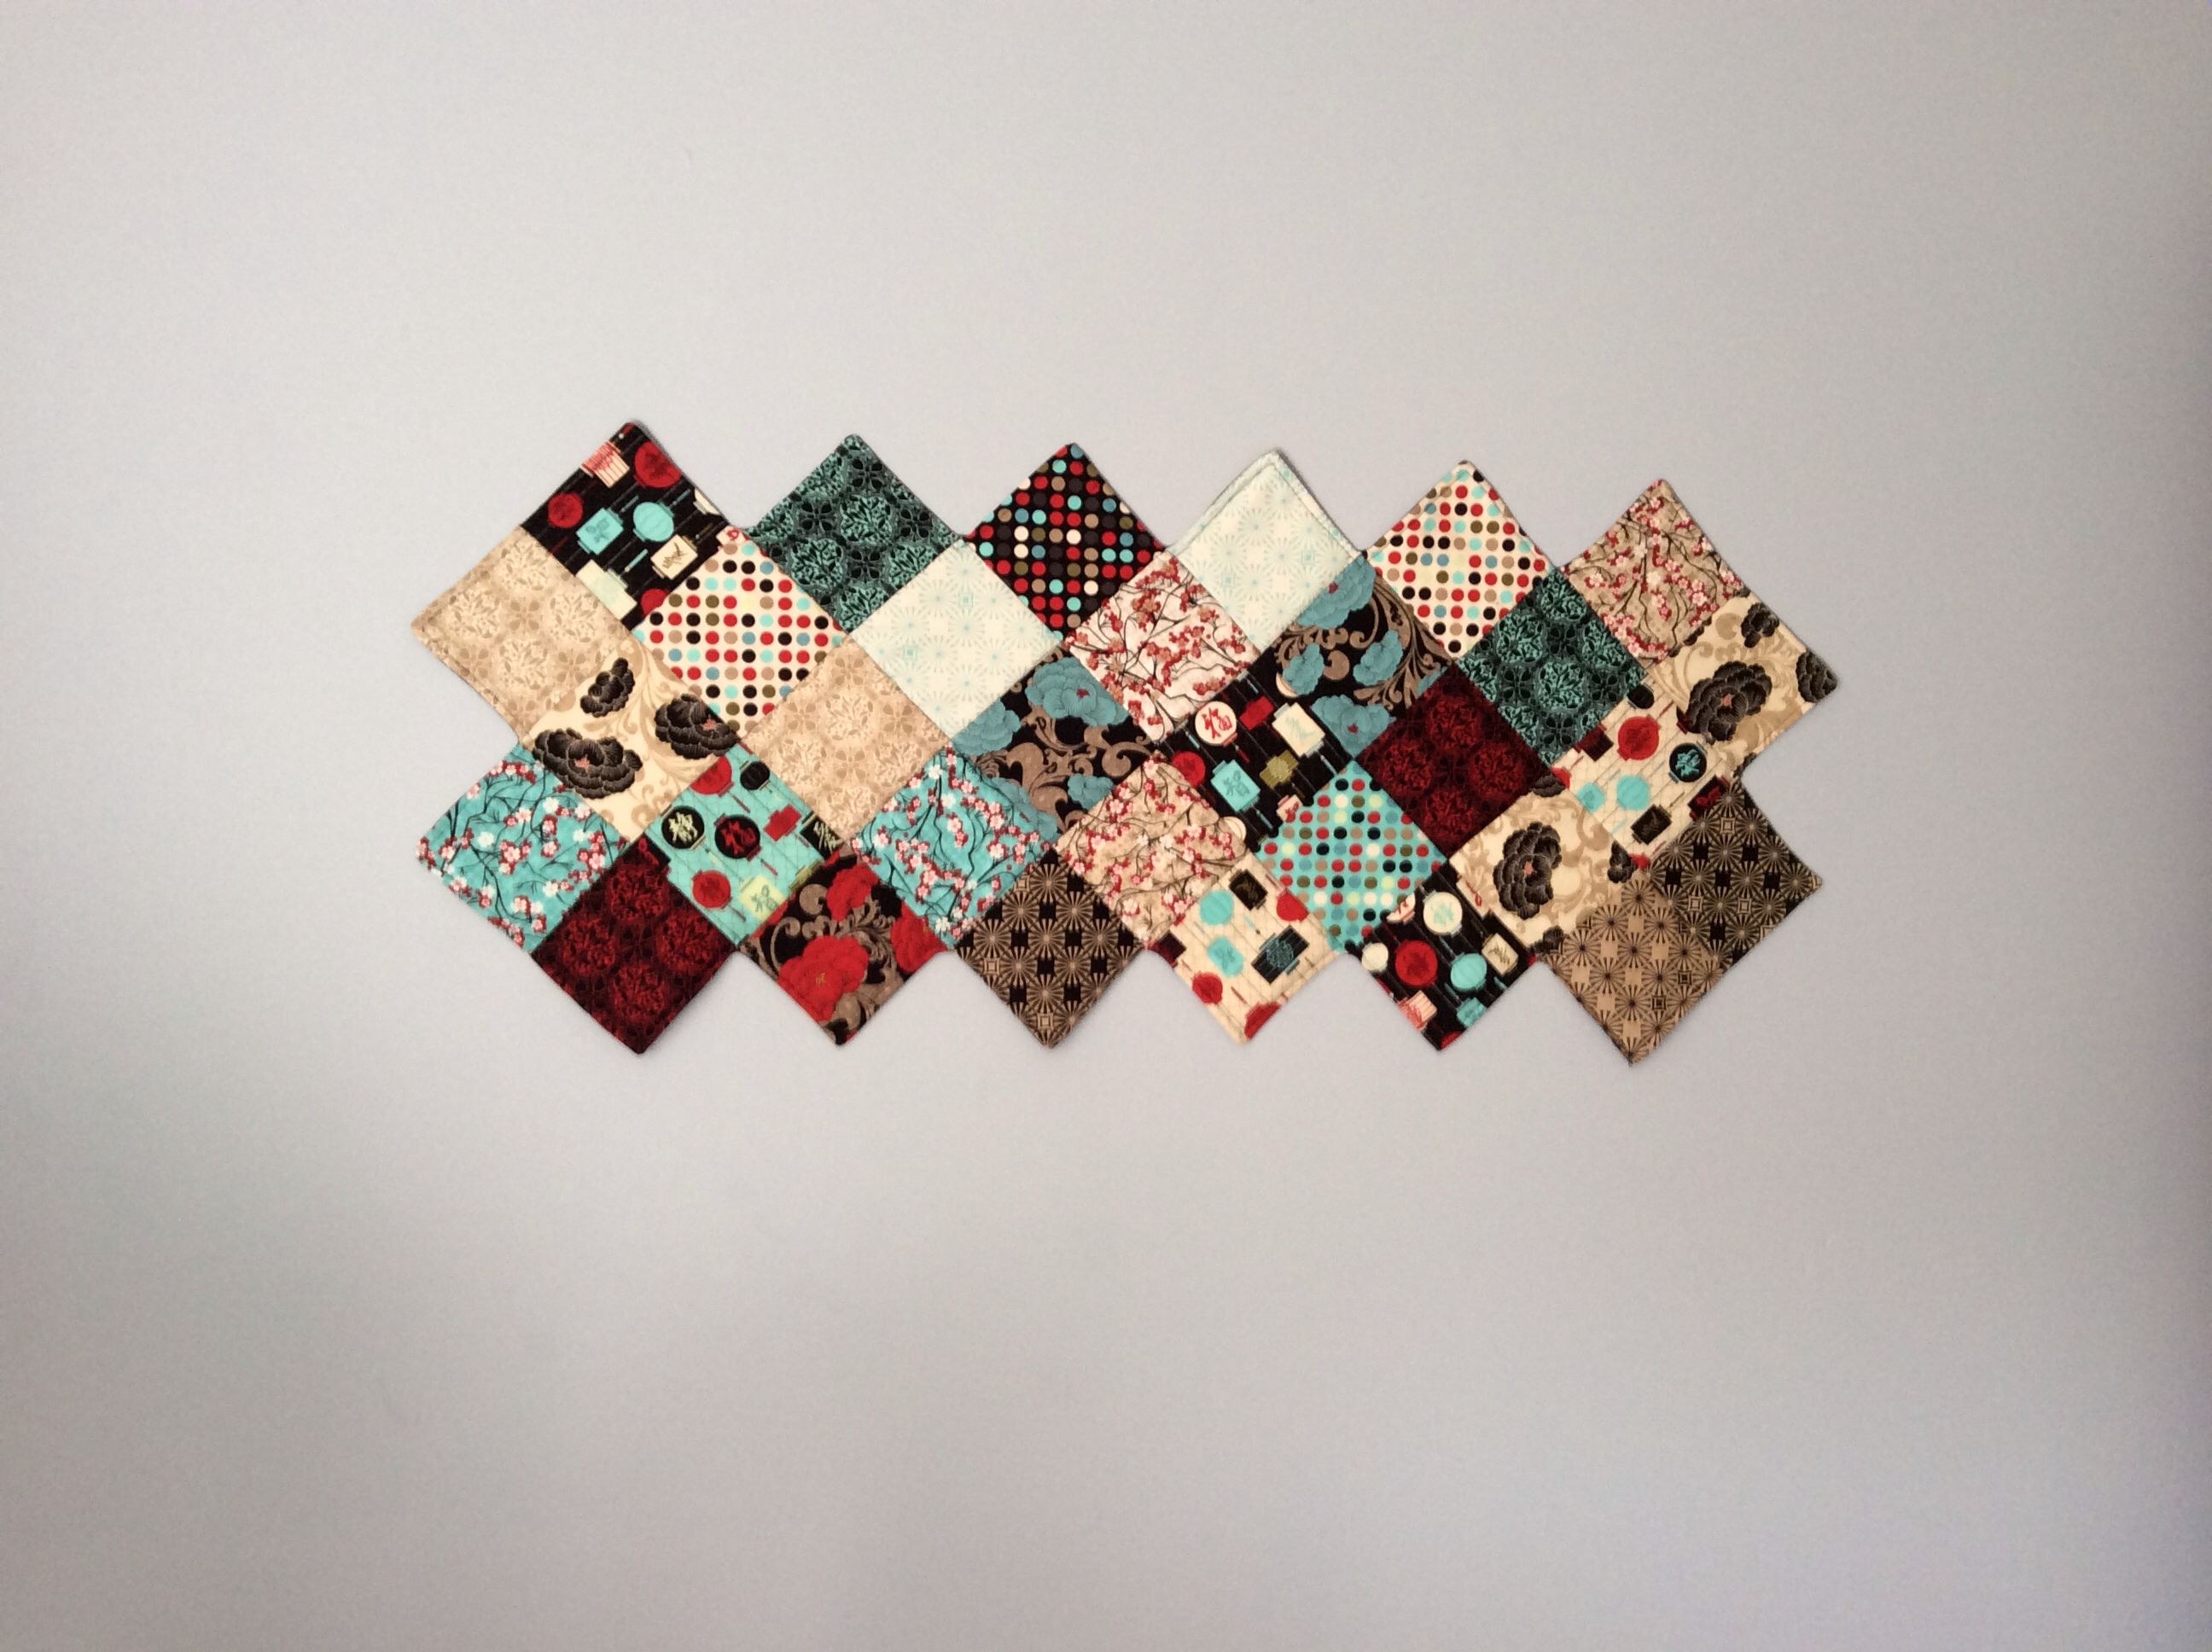 Zigzag quilted wall hanging or table runner quilts Pinterest